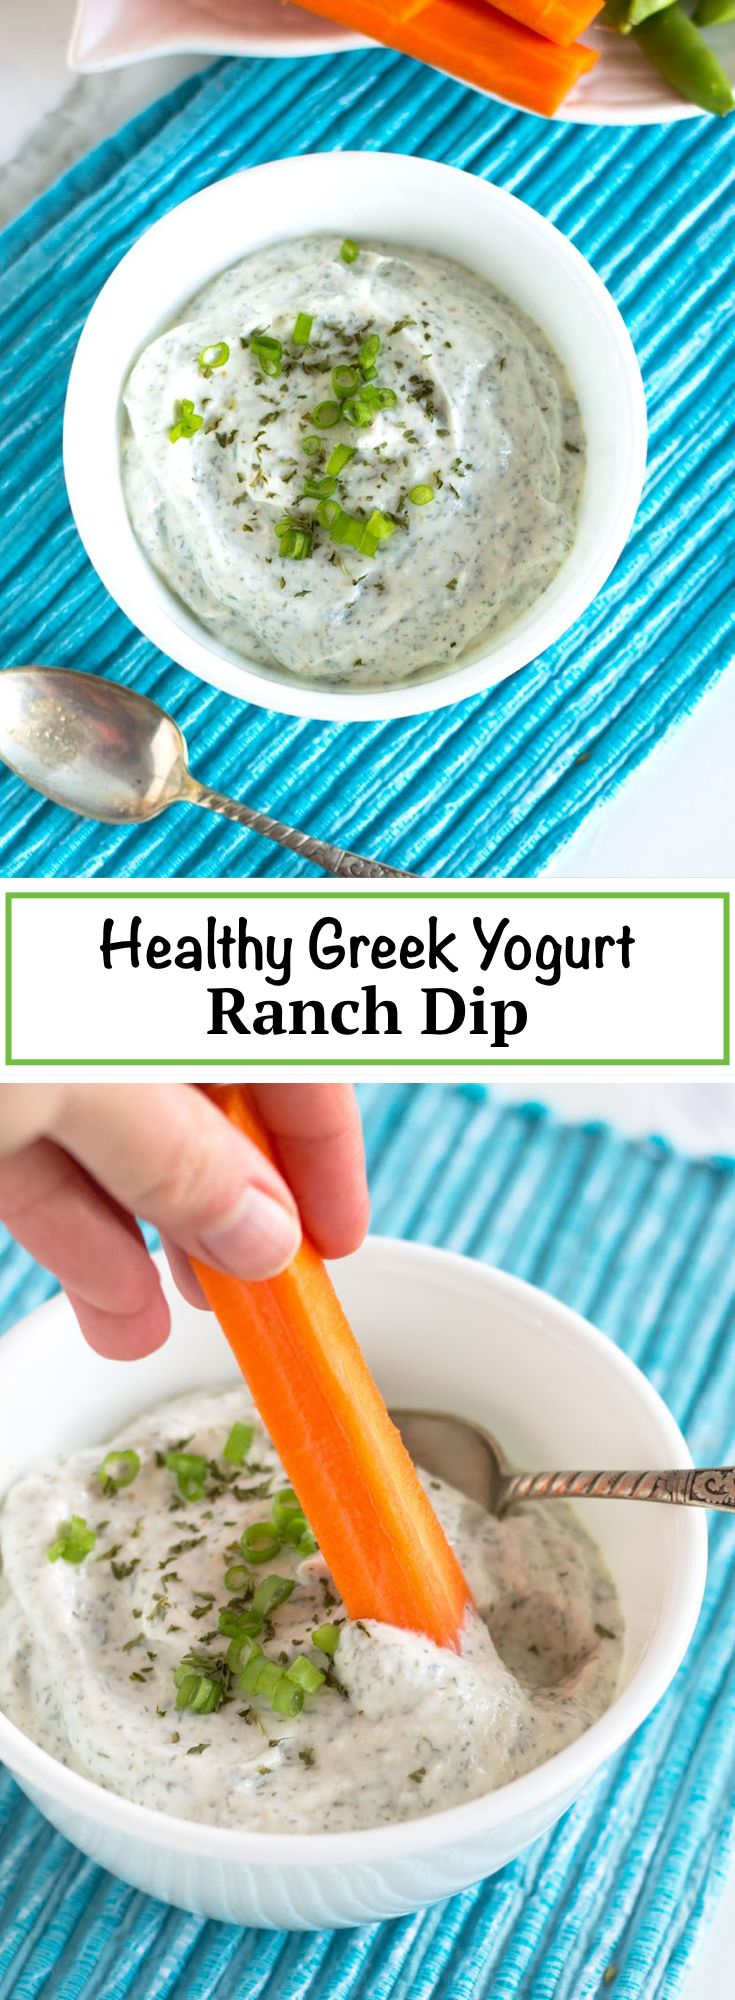 Healthy Ranch Dip | nourishedtheblog.com | An easy to make dip perfect for dipping those veggies! Made with greek yogurt and pantry spices for a super easy snack made in just minutes that's naturally gluten free and vegetarian friendly.